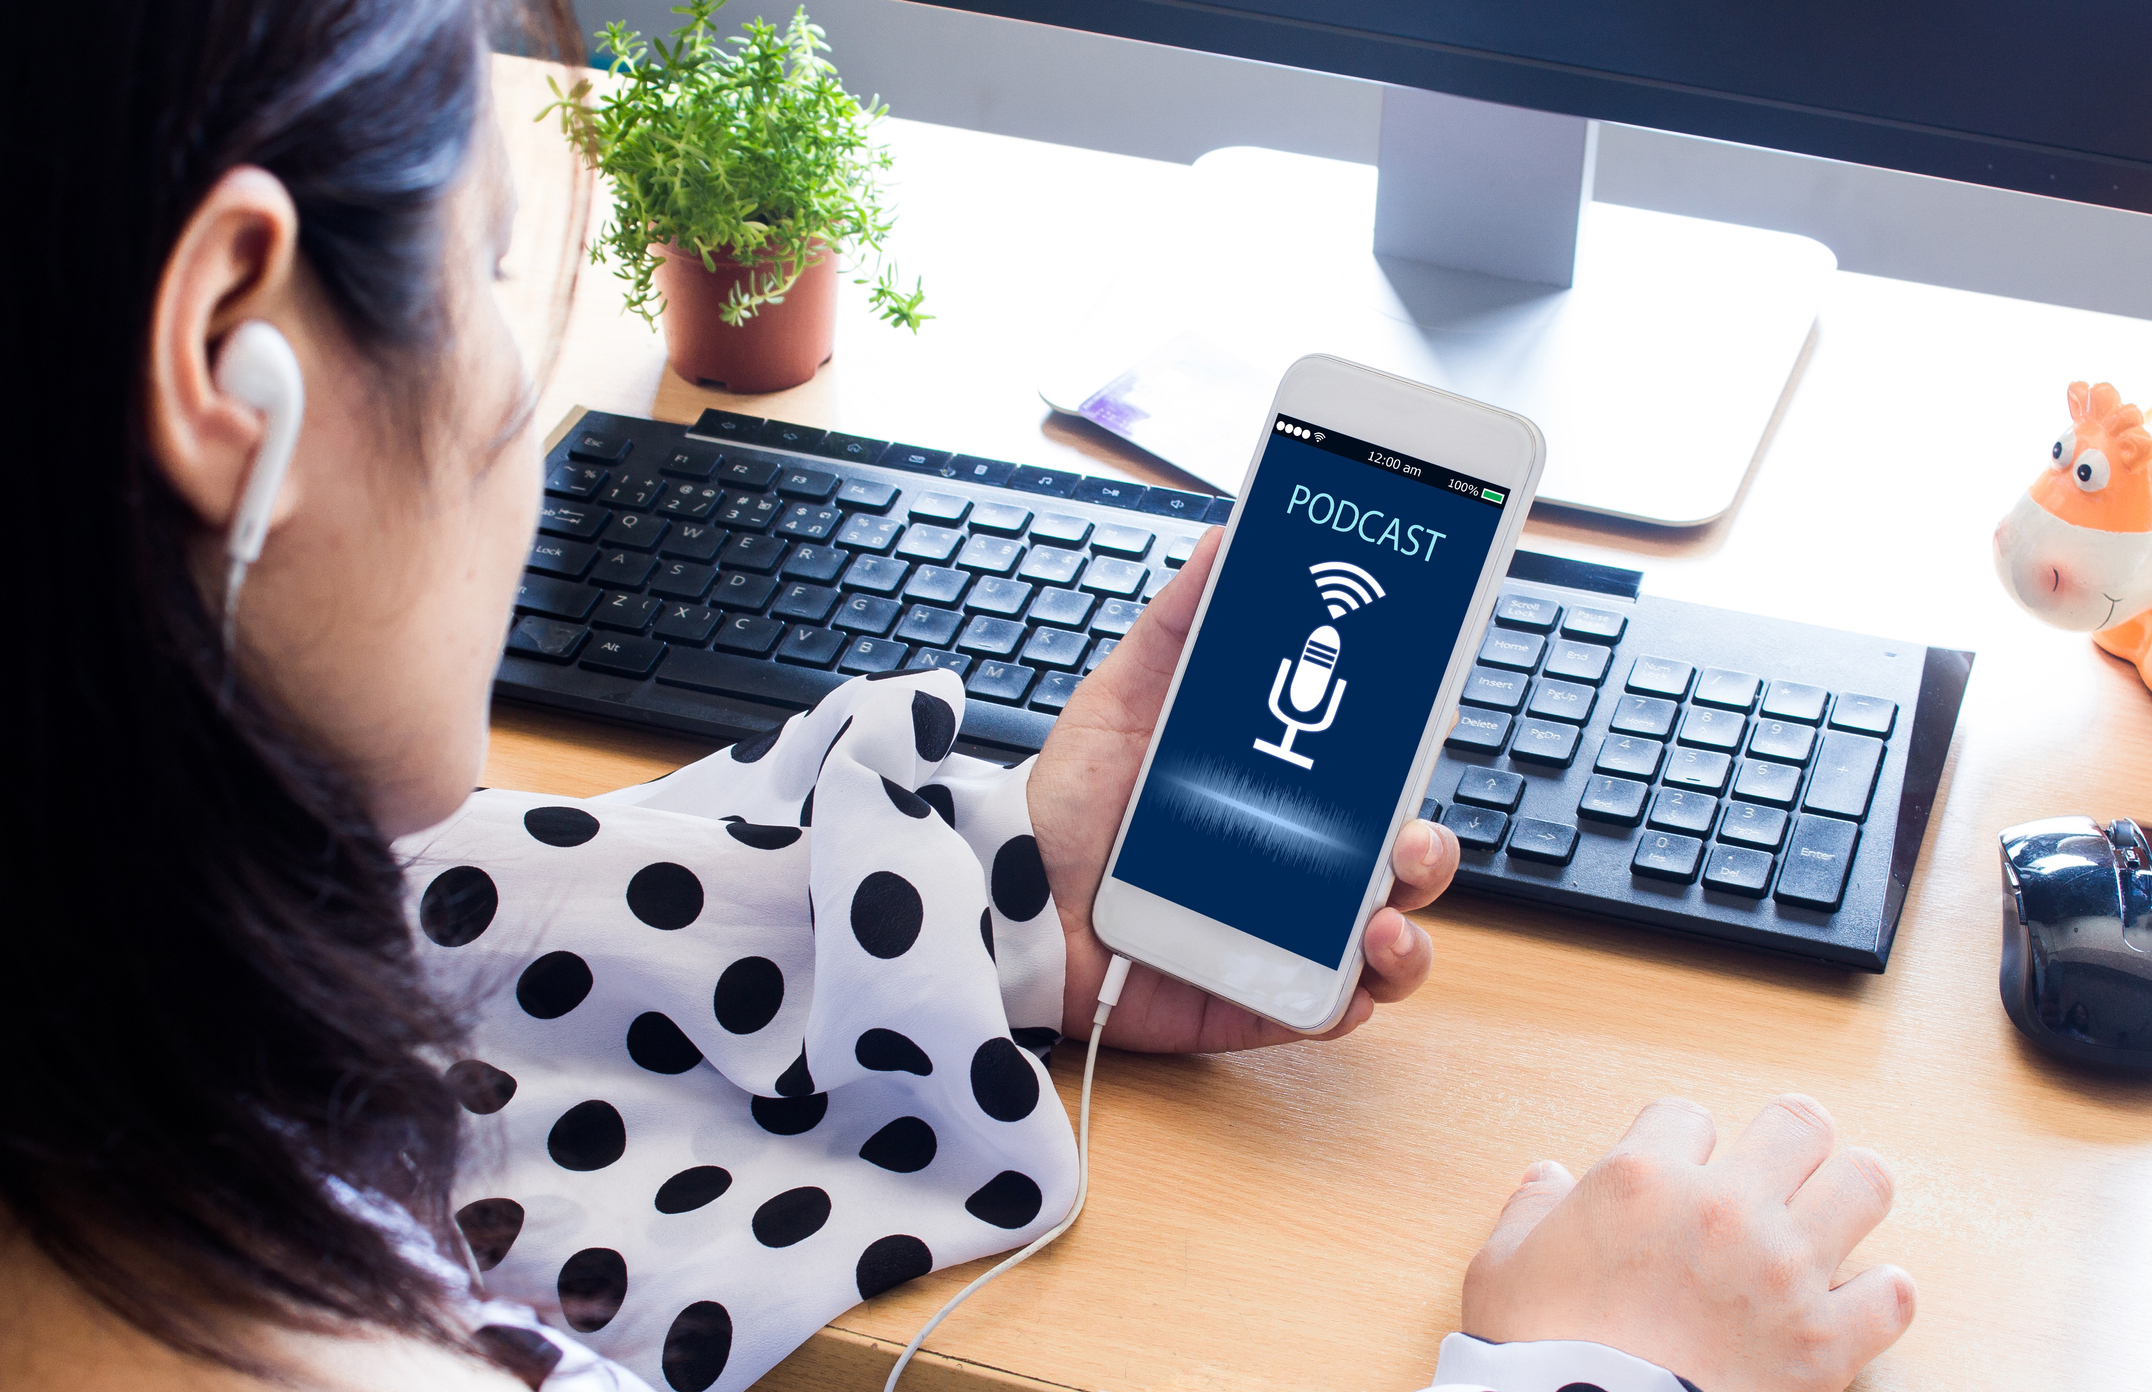 header image for real estate podcast: over-the-shoulder shot of woman holding phone listening to a podcast